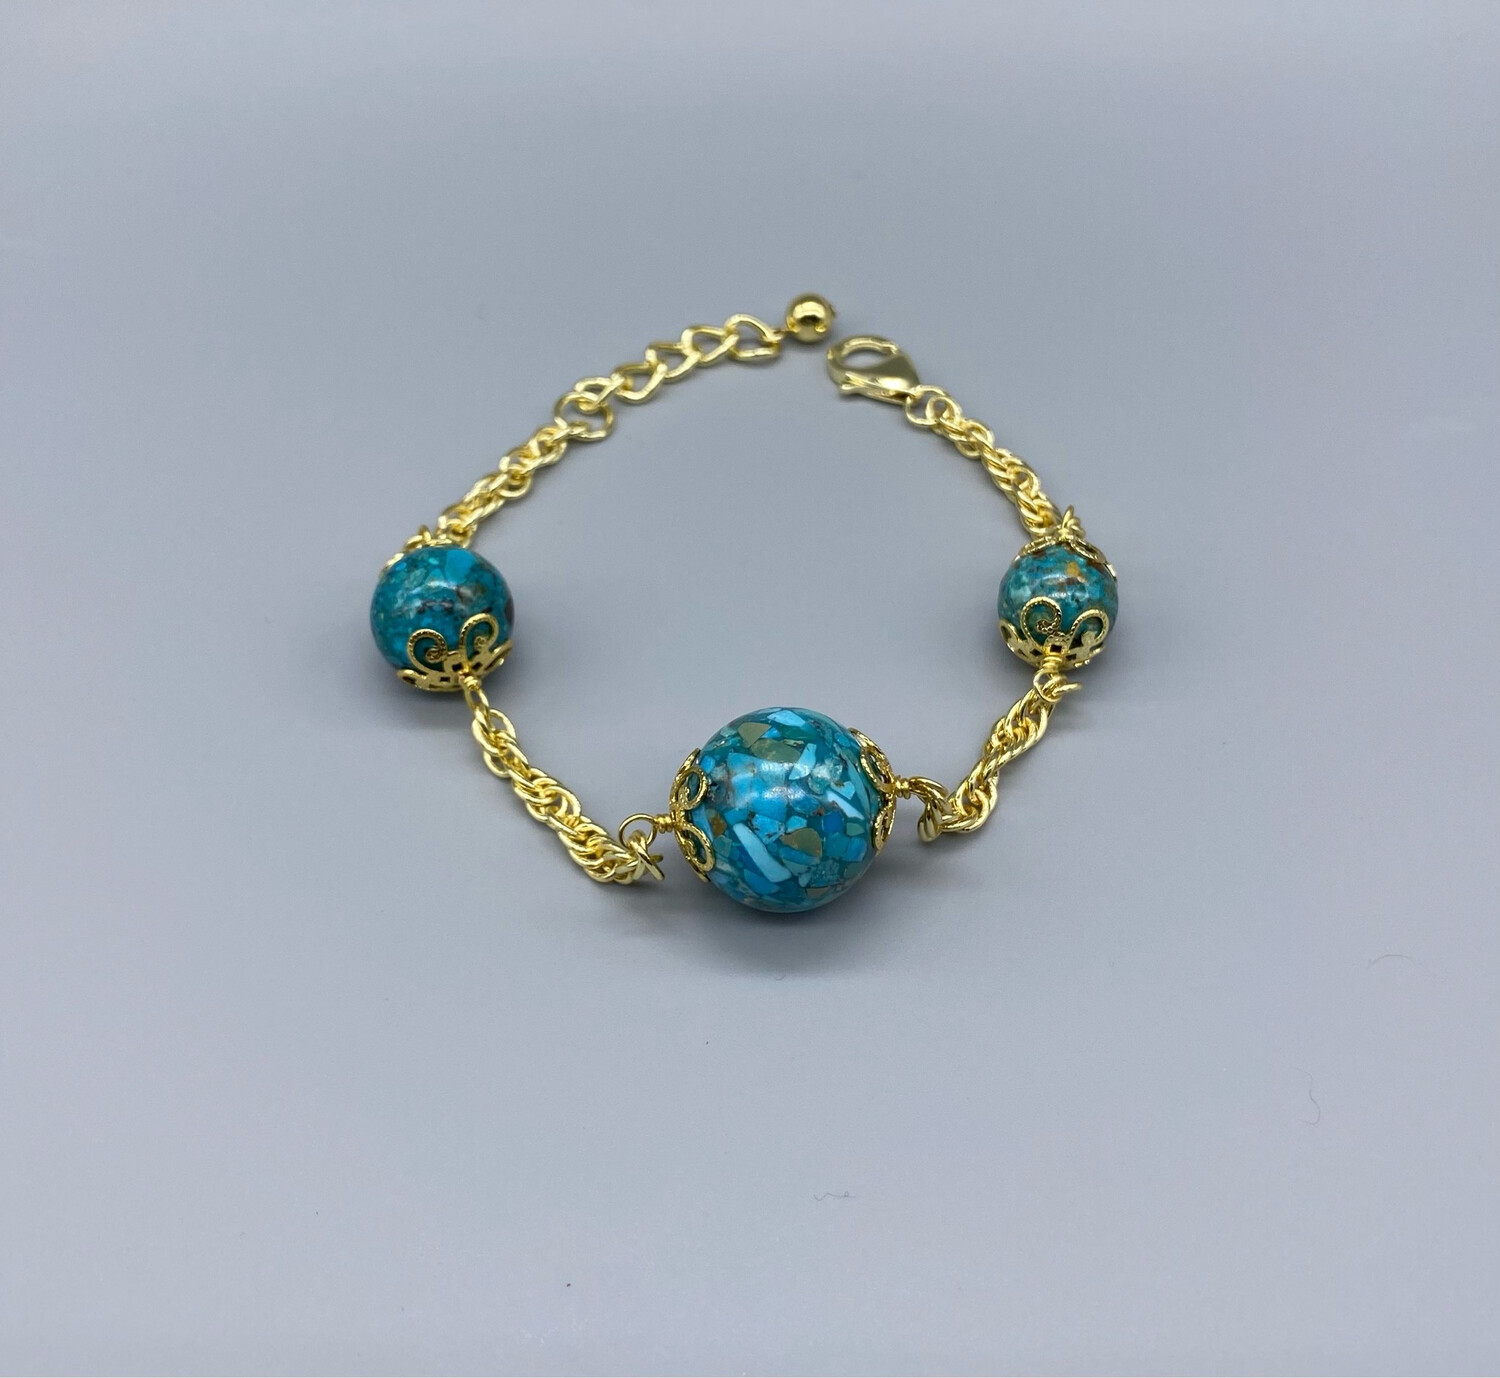 Gold Chain Bracelet With Faux Turquoise Stones